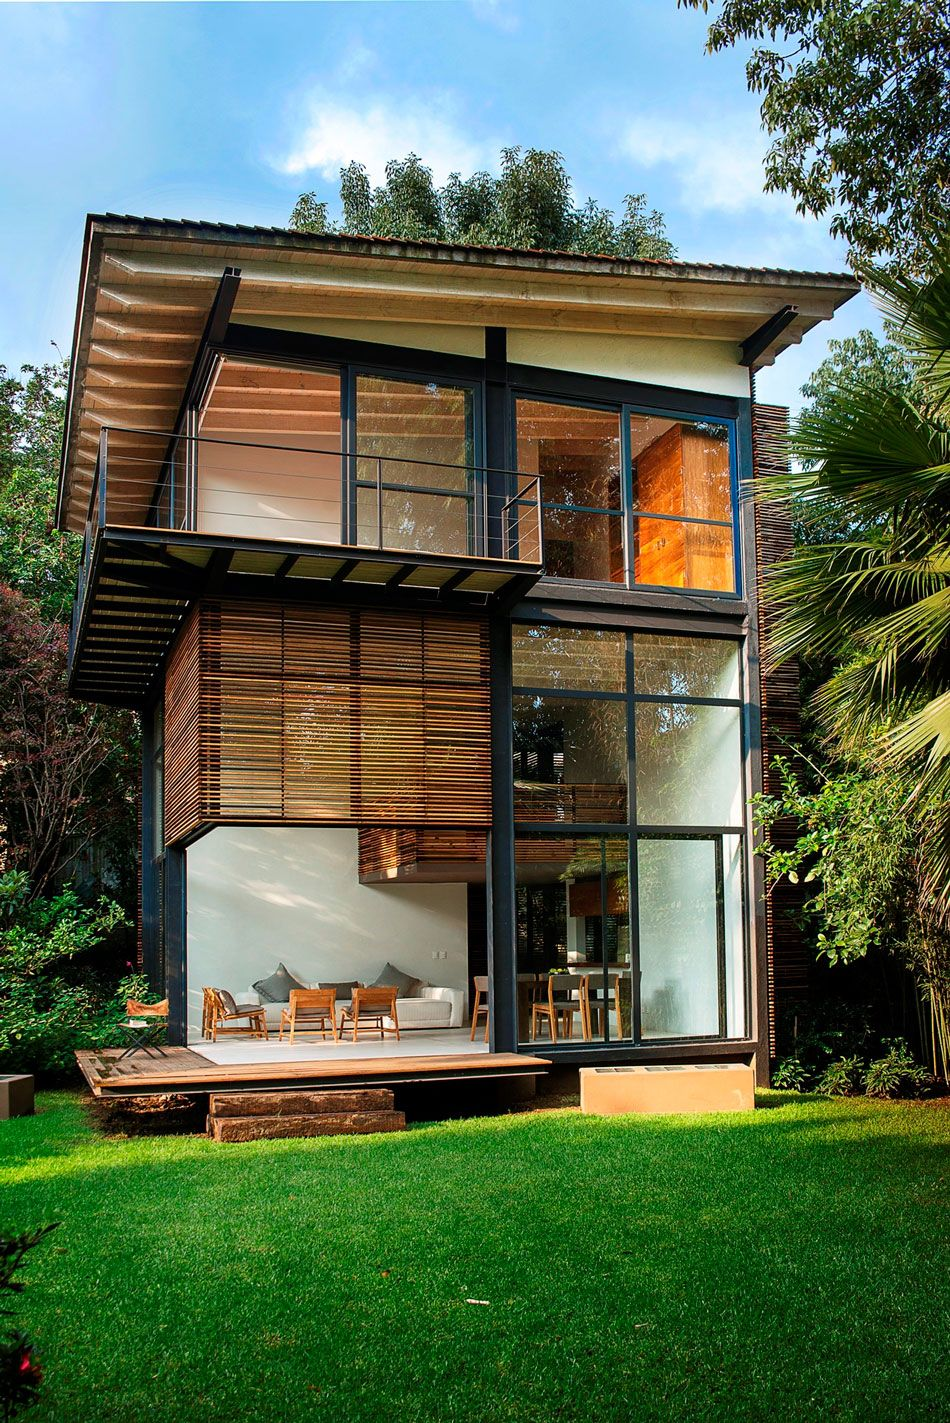 Beautiful black brown wood glass modern design small modern nature garden house wall glass deck chairs